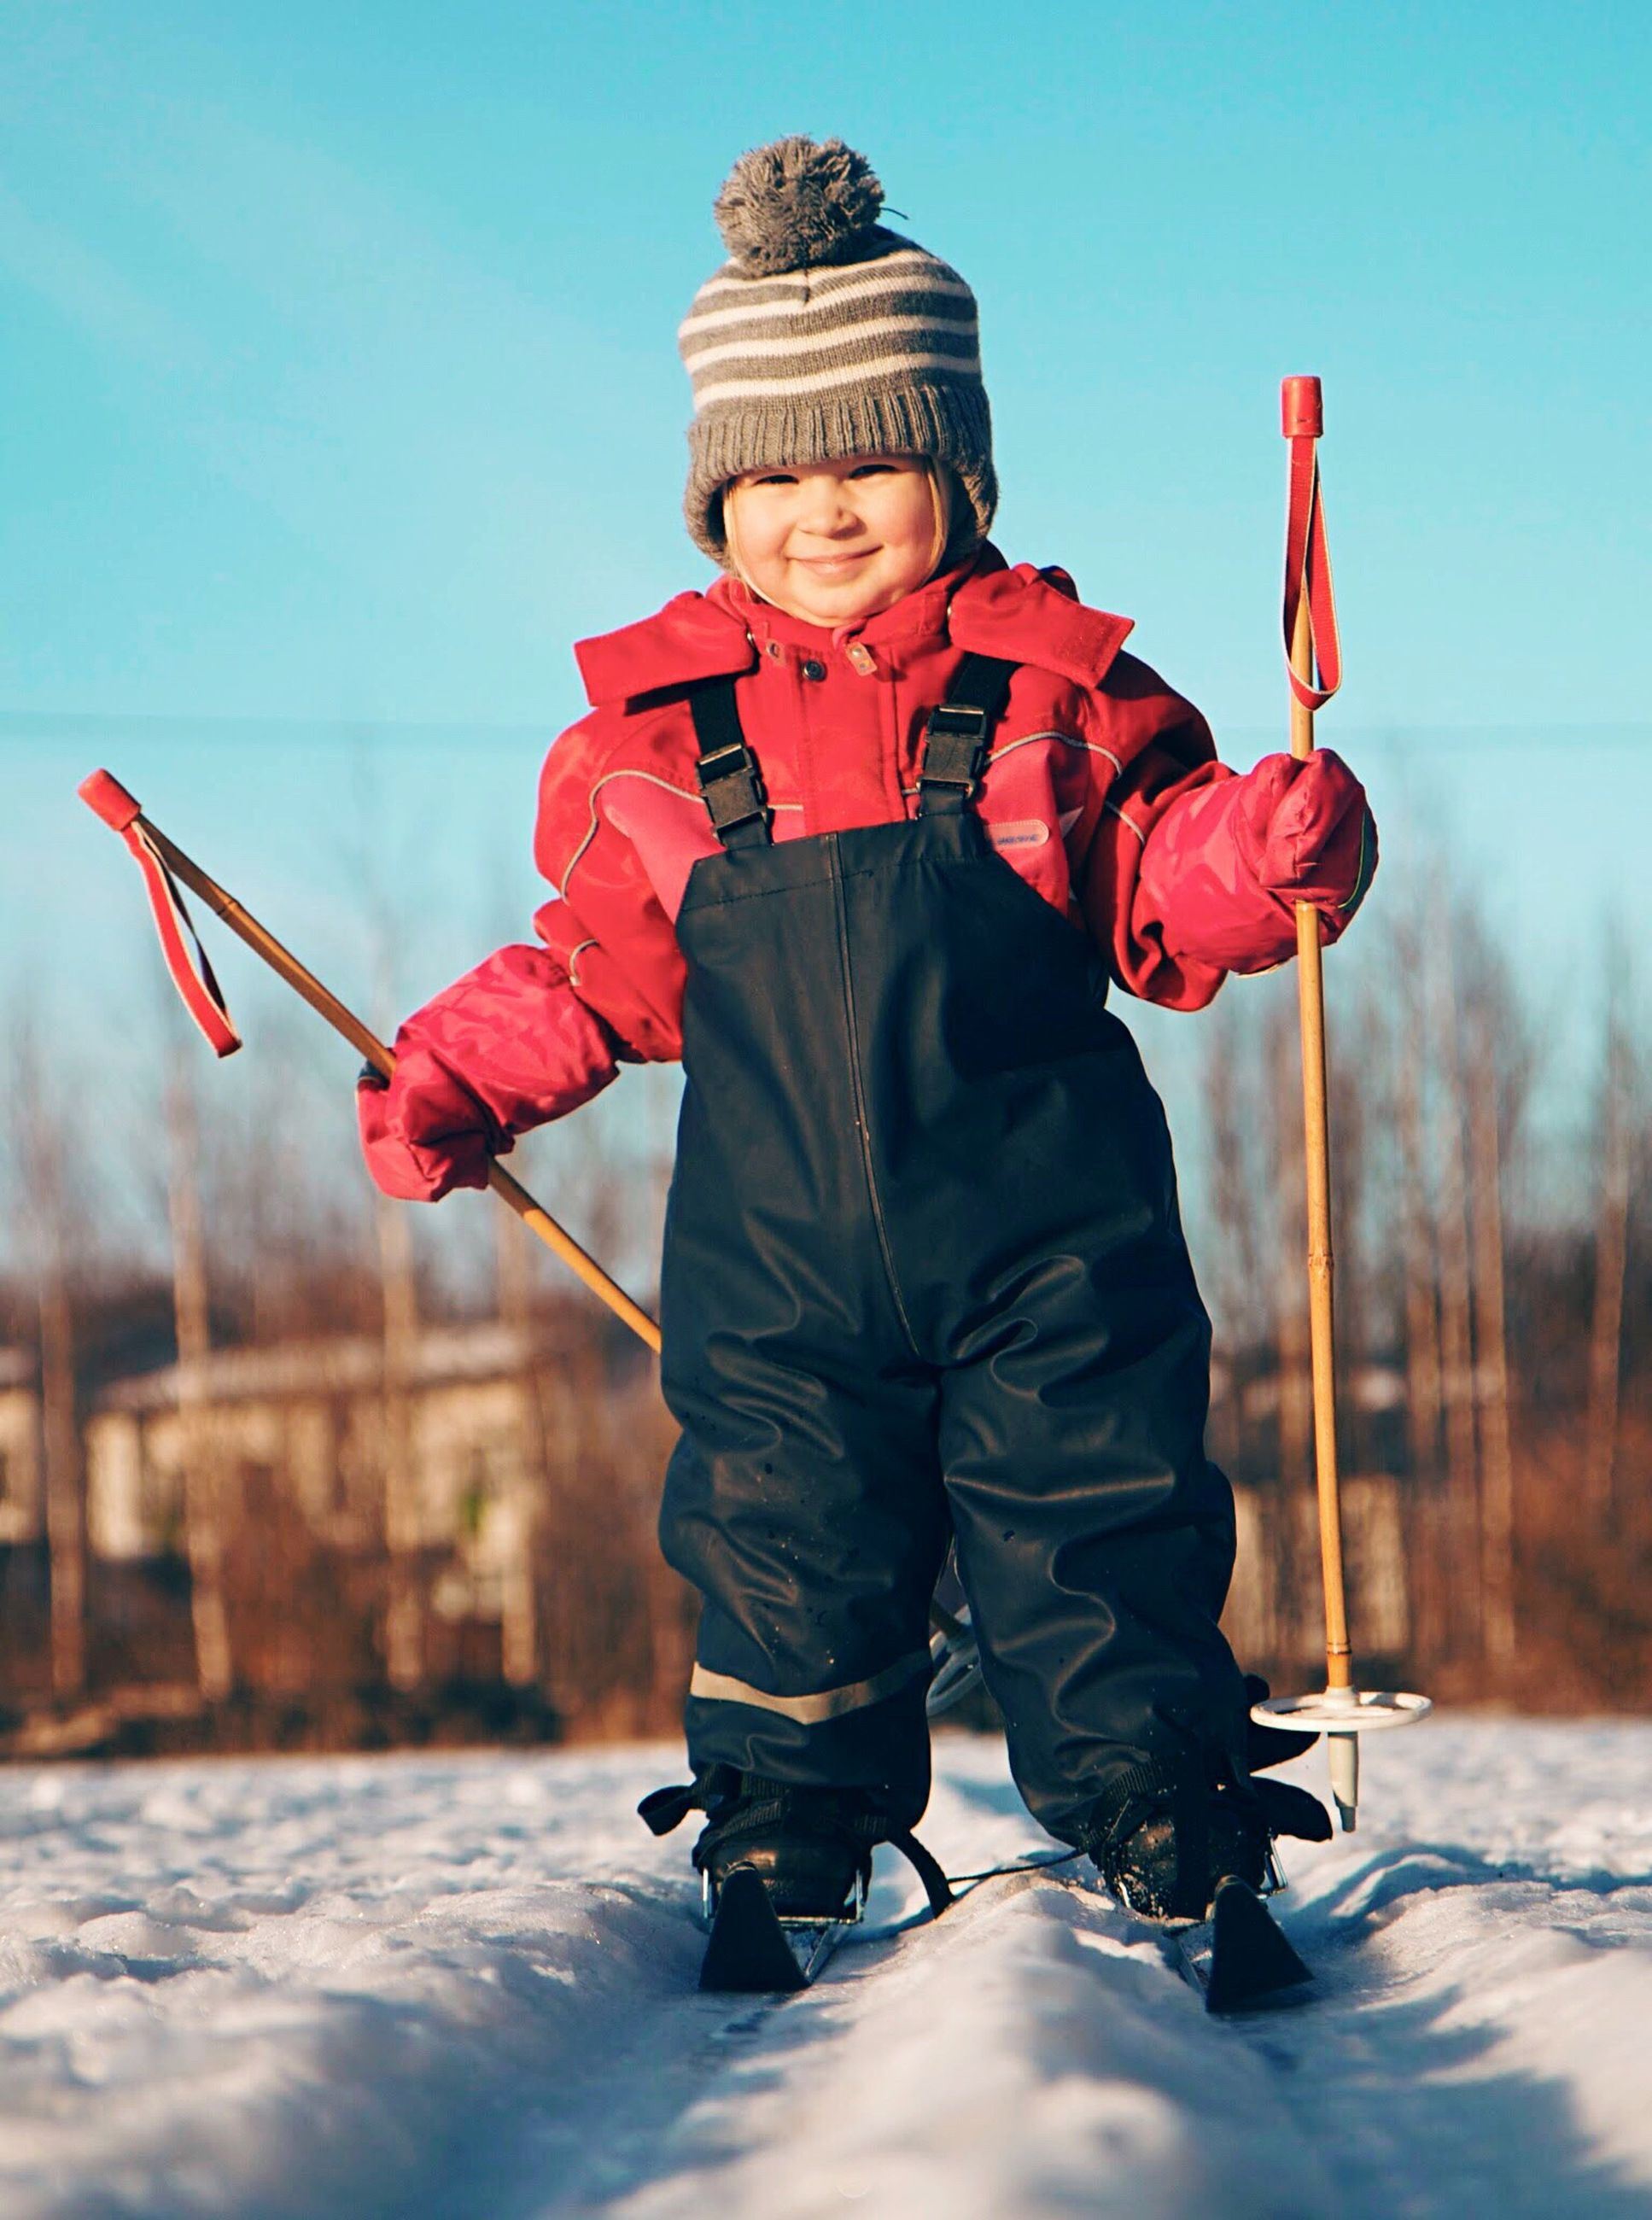 winter, warm clothing, one person, snow, males, children only, child, red, full length, cold temperature, one boy only, childhood, front view, standing, looking at camera, people, outdoors, knit hat, portrait, smiling, ski holiday, cheerful, sky, nature, human body part, snowboarding, day